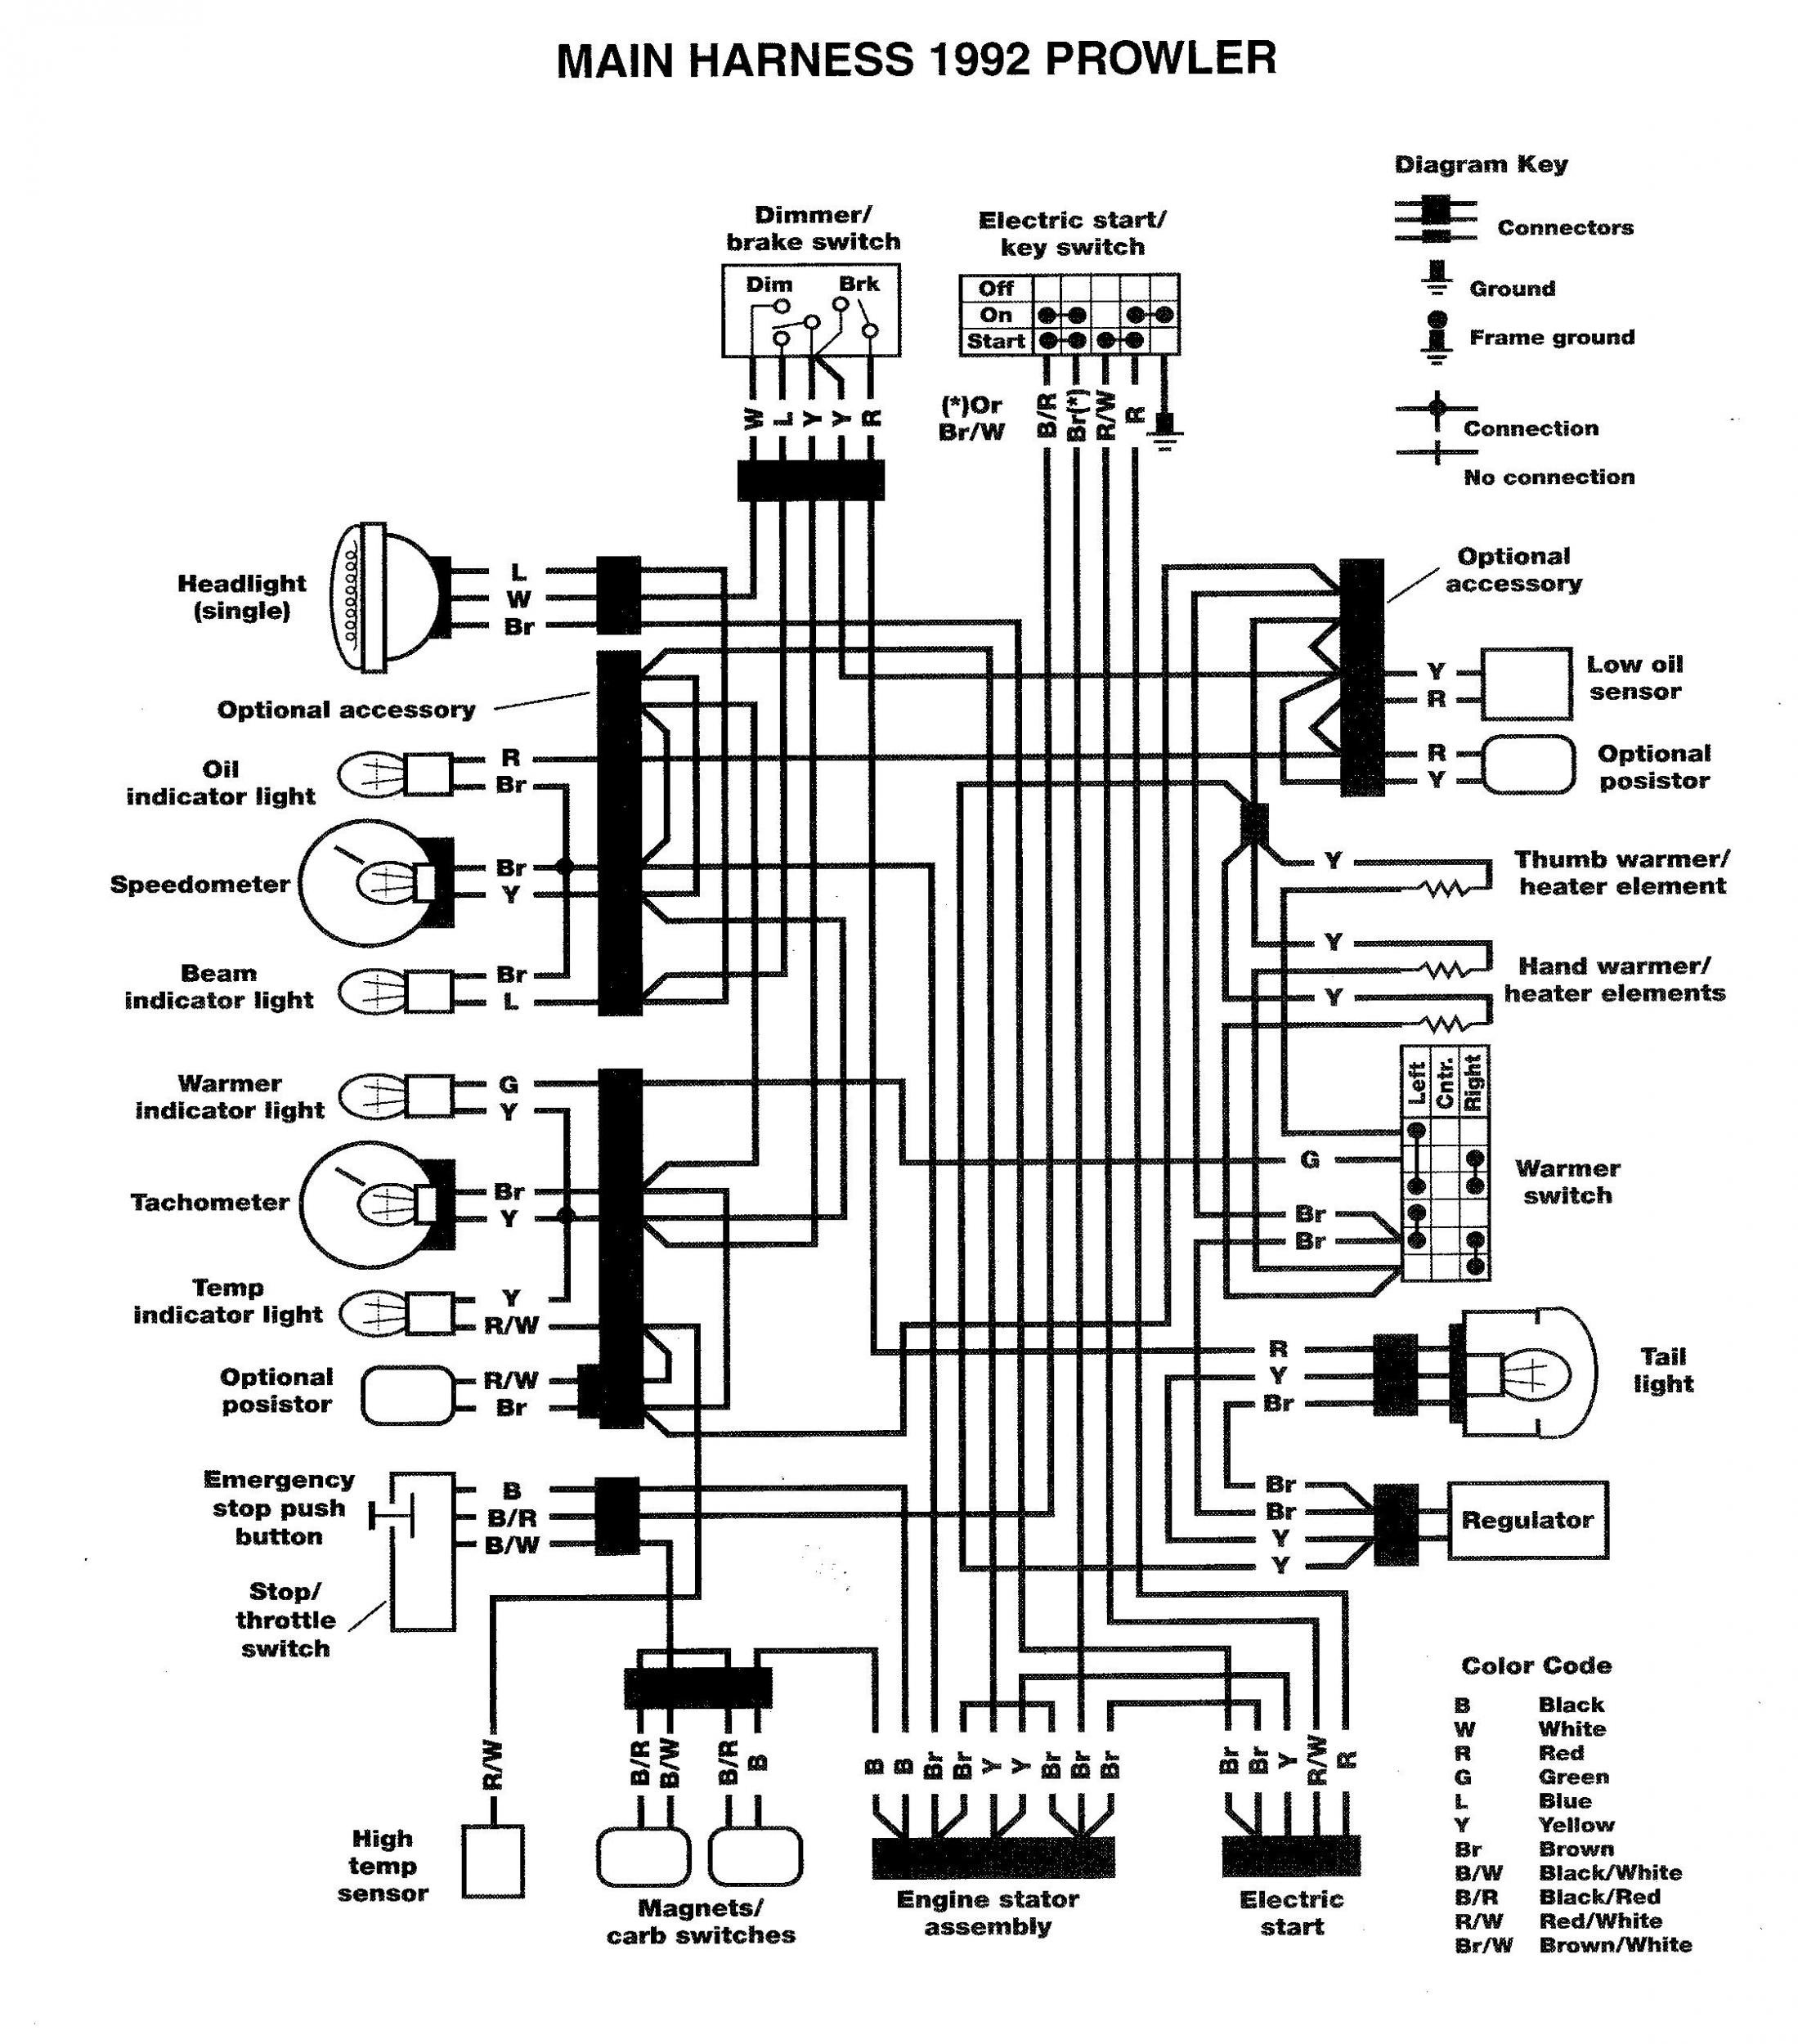 DIAGRAM] Shaker 500 Wiring Diagram FULL Version HD Quality Wiring Diagram -  HEXSUSPENSION.LIONSICILIA.ITlionsicilia.it